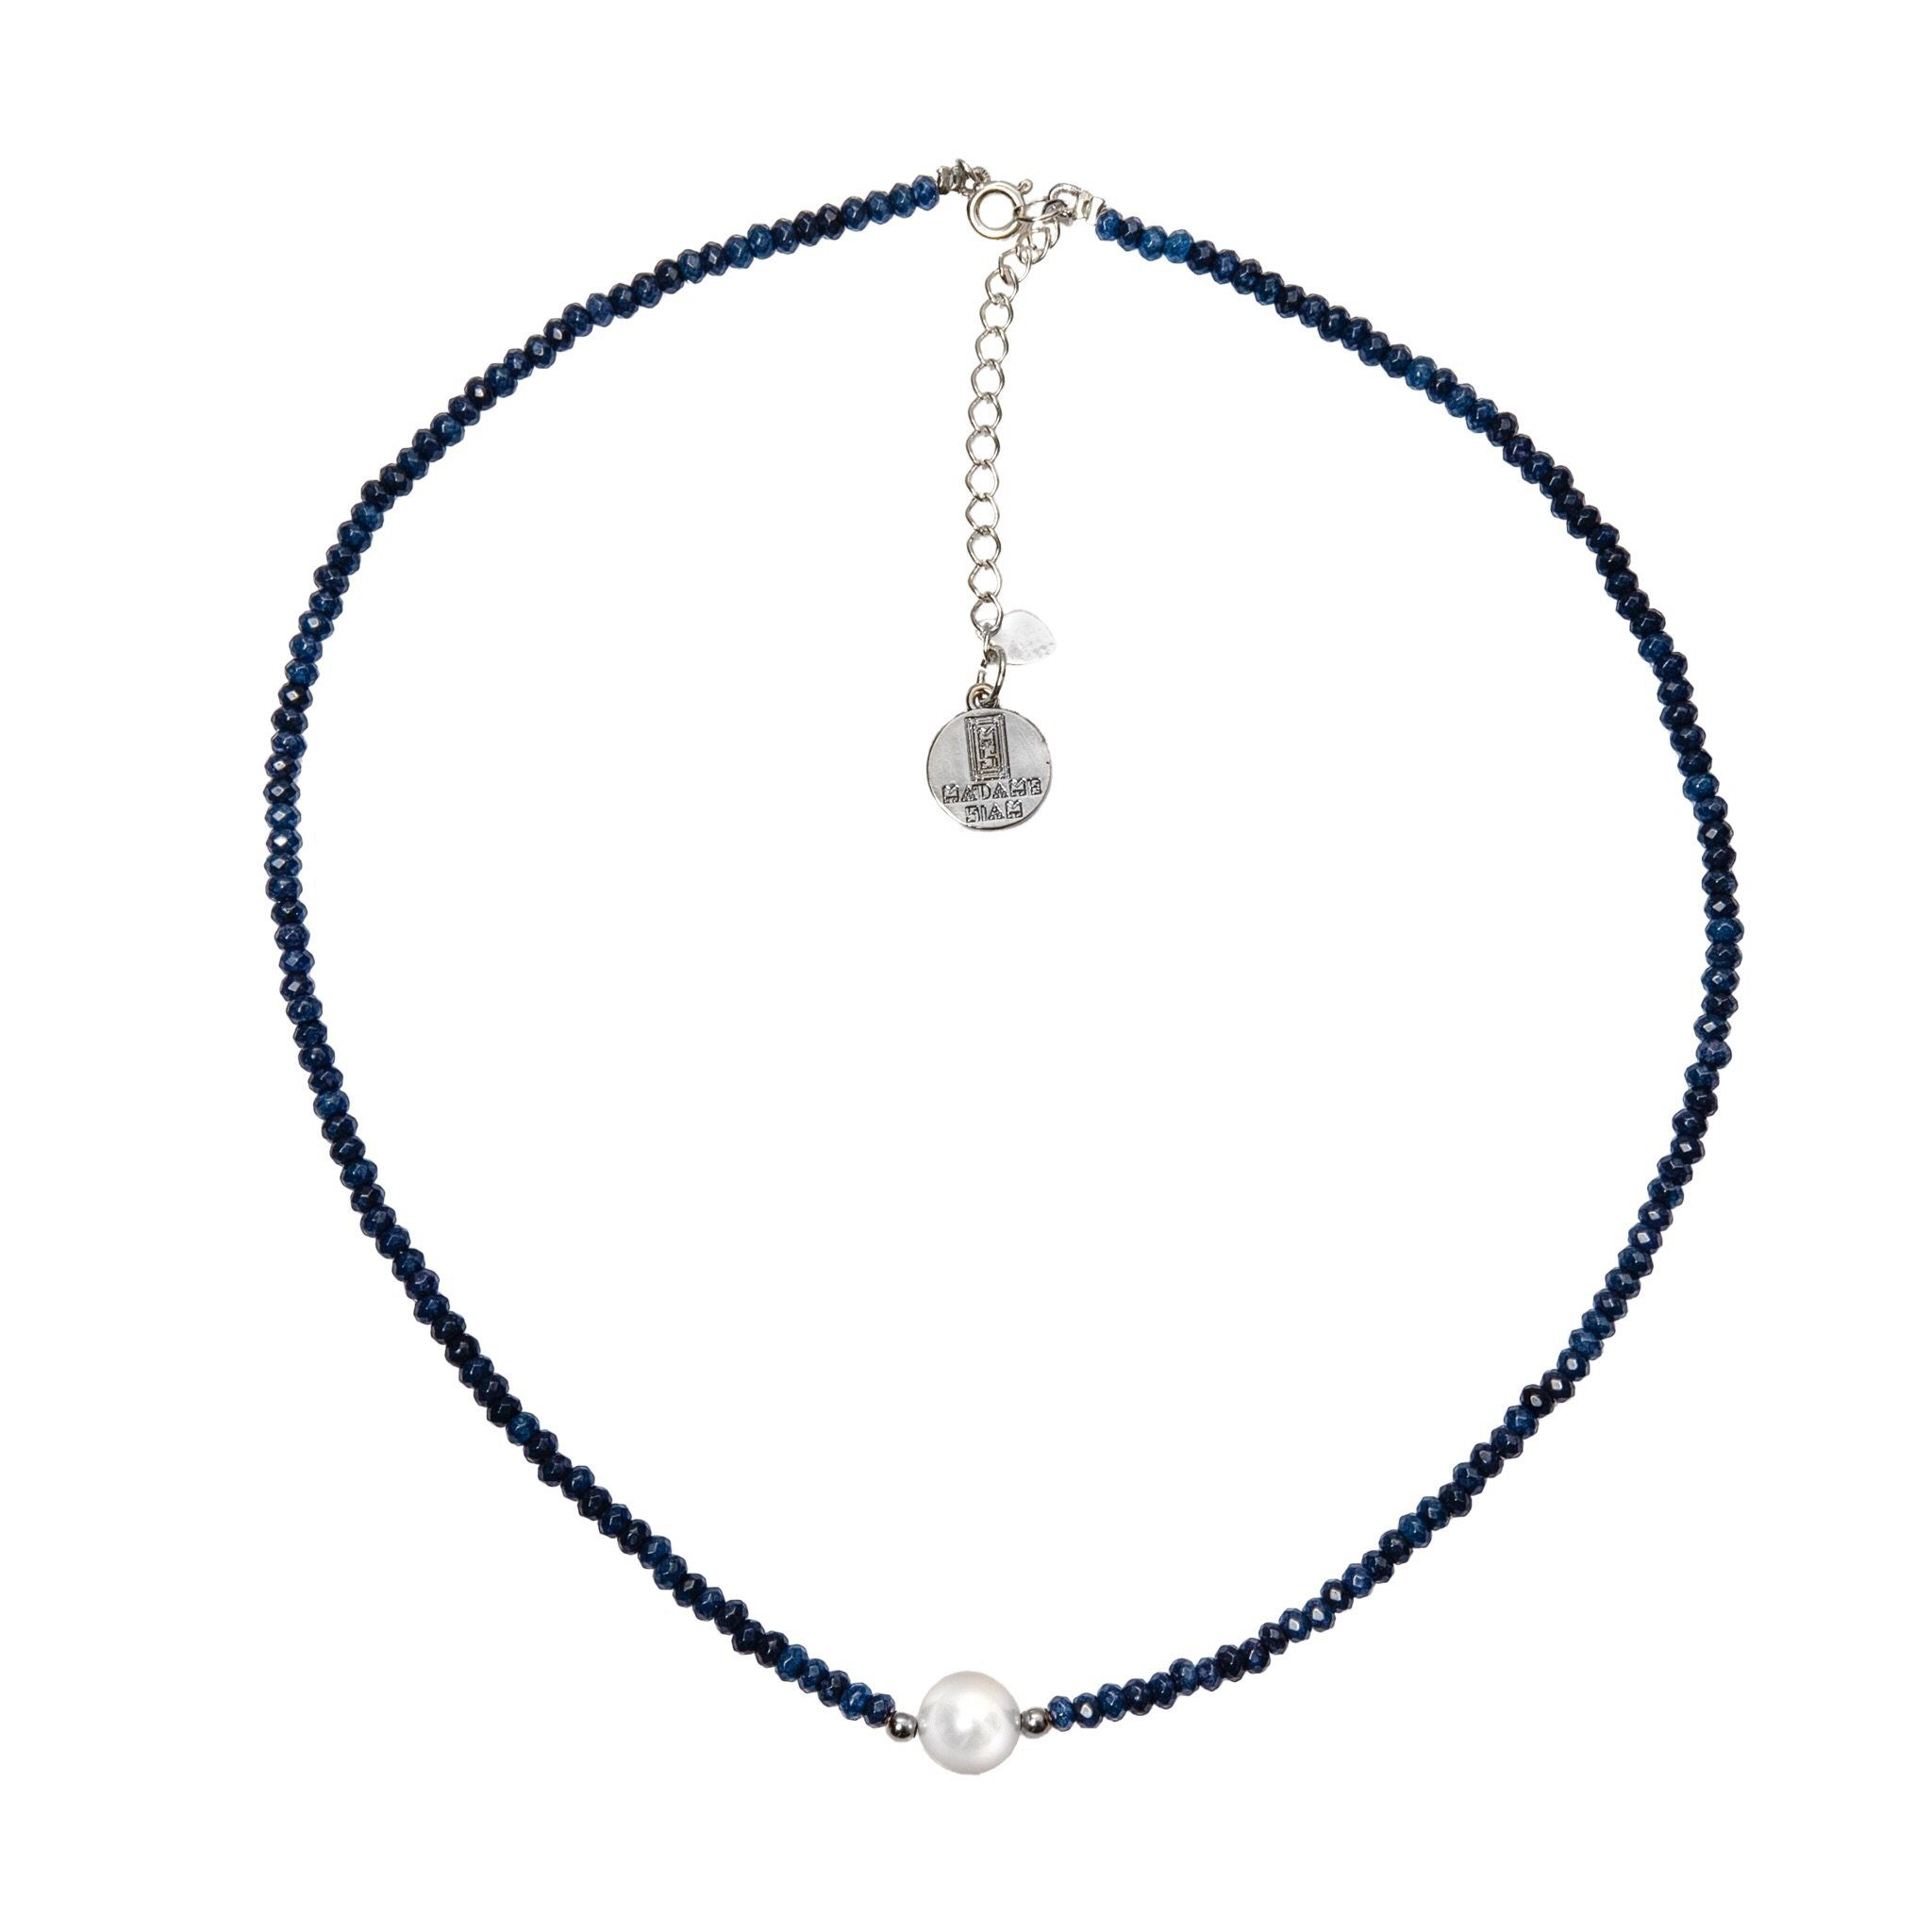 MINIMA pearl and iolite chocker - MadamSiam